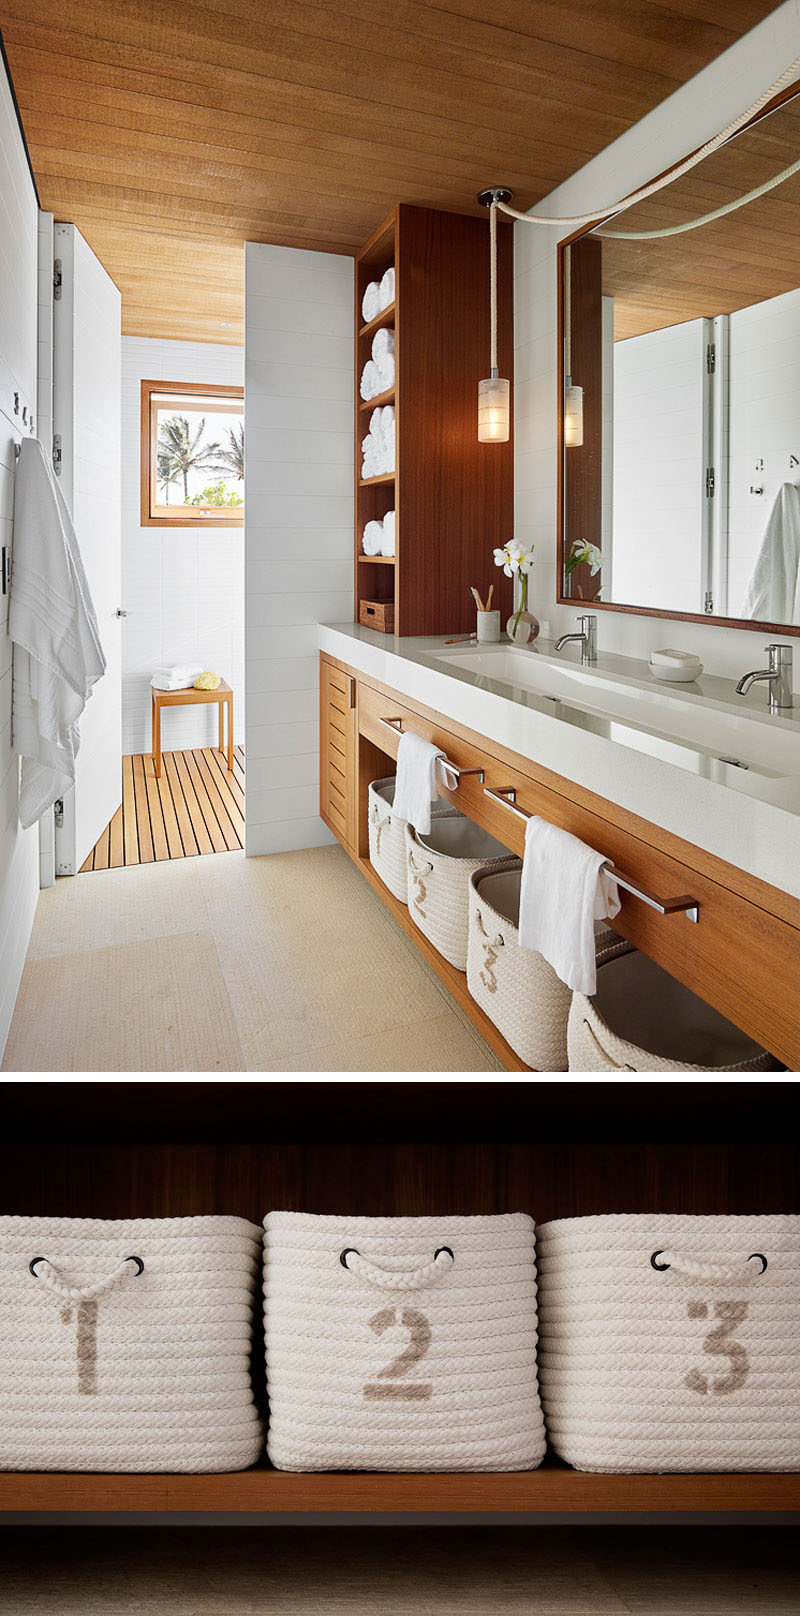 In this modern beach house bathroom, a white countertop with a long trough sink sits on a wood vanity with open shelving. #ModernBathroom #BeachHouse